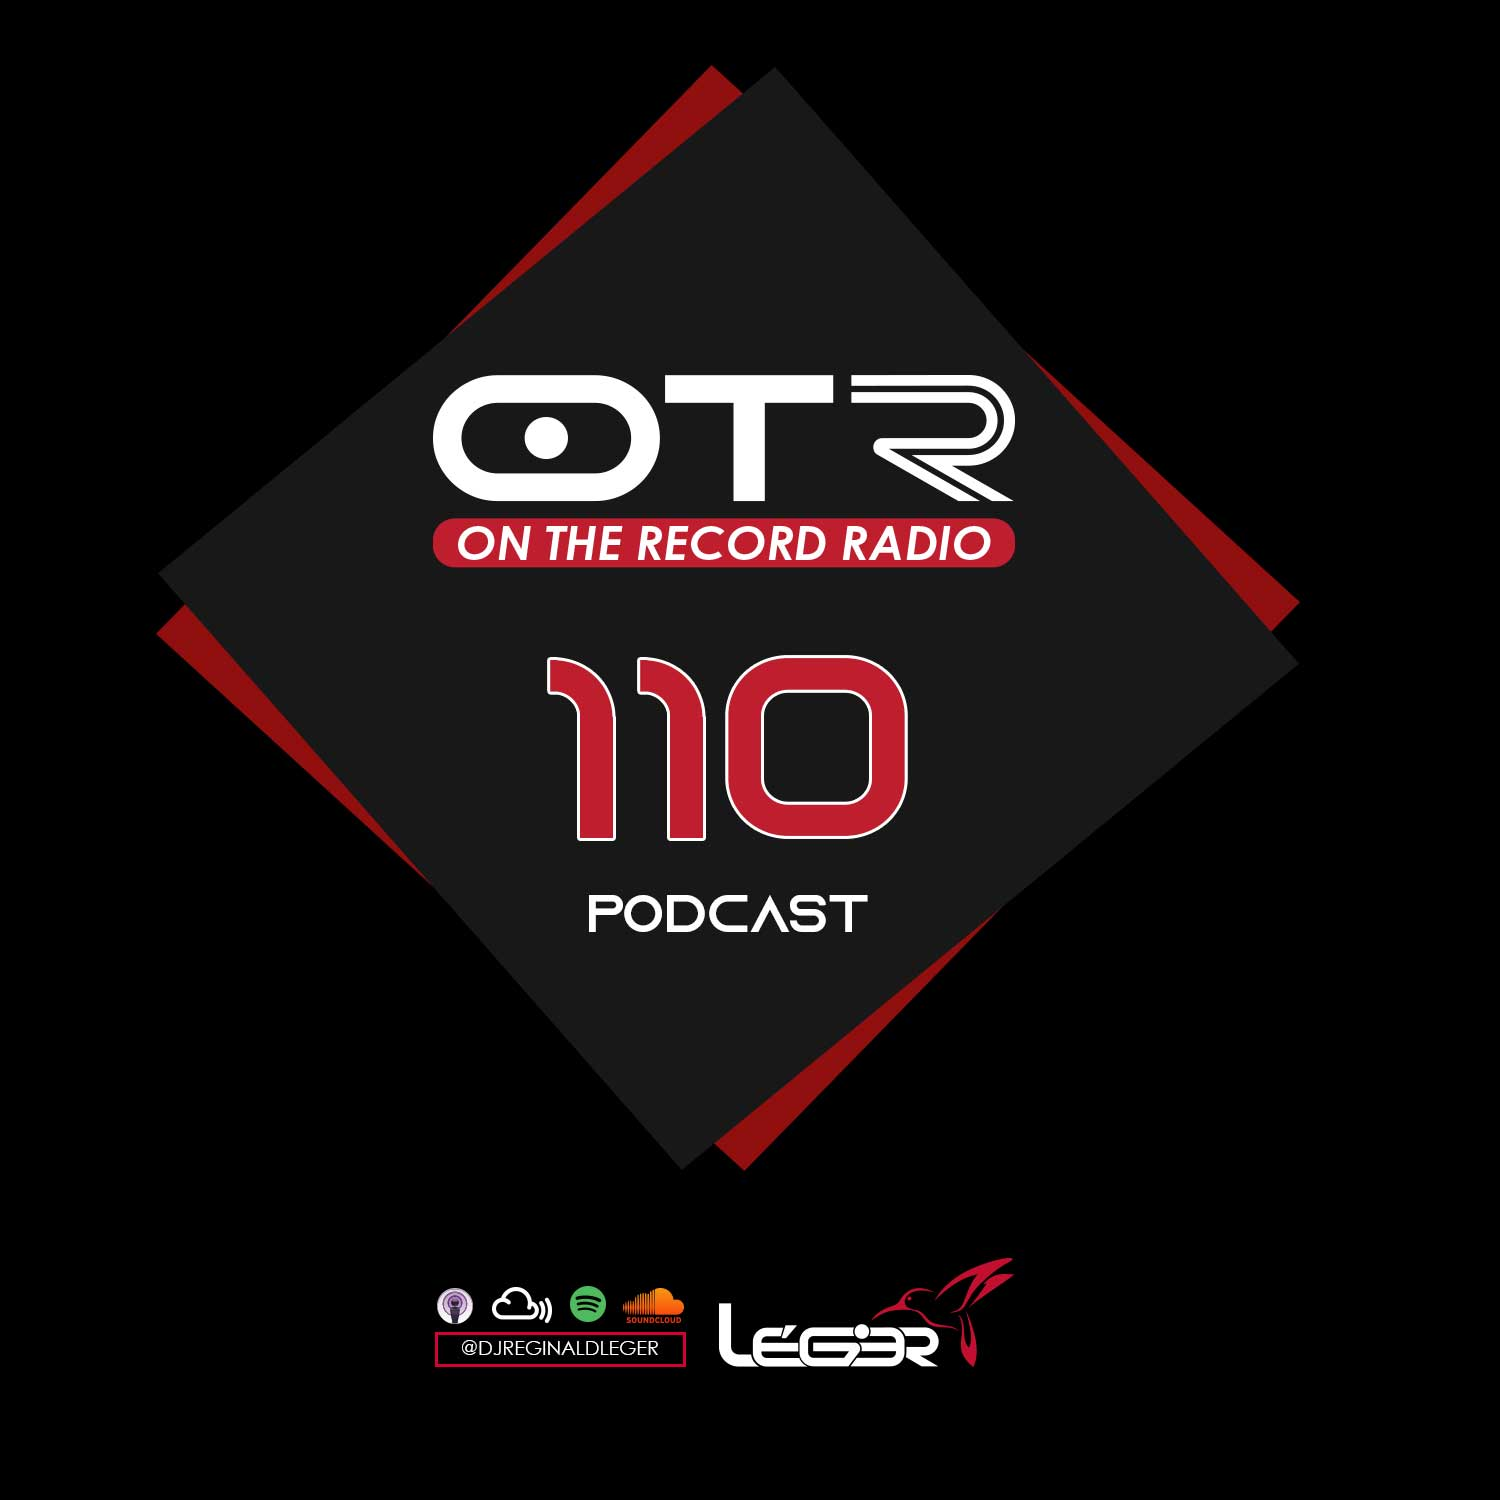 On The Record | OTR 110